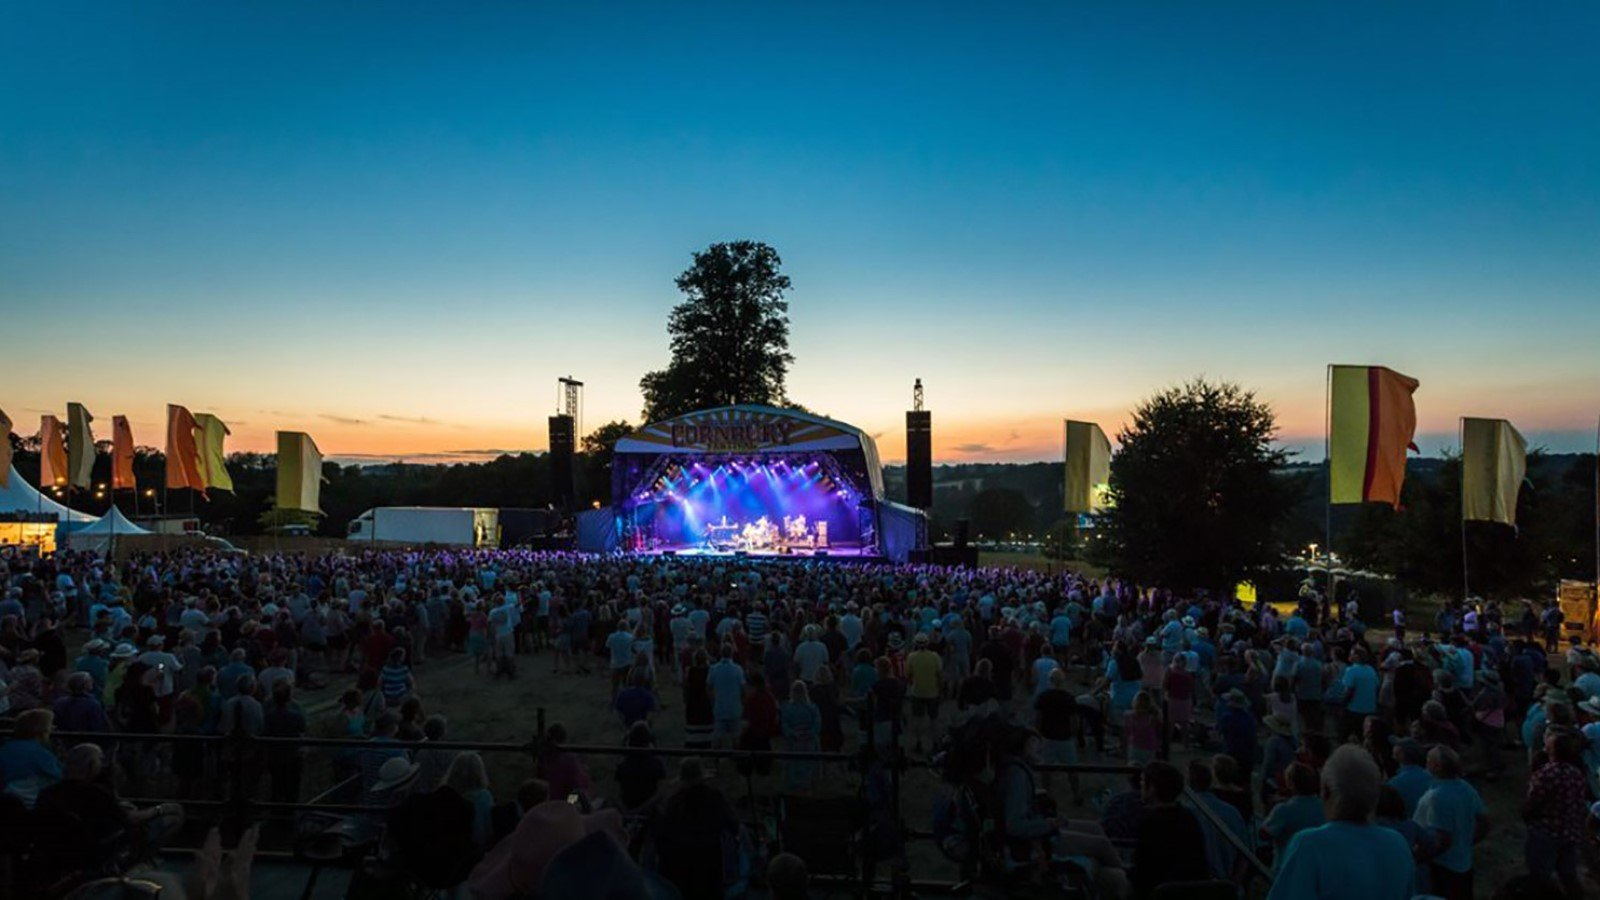 The Cornbury Festival 2021 at Great Tew Park has been cancelled